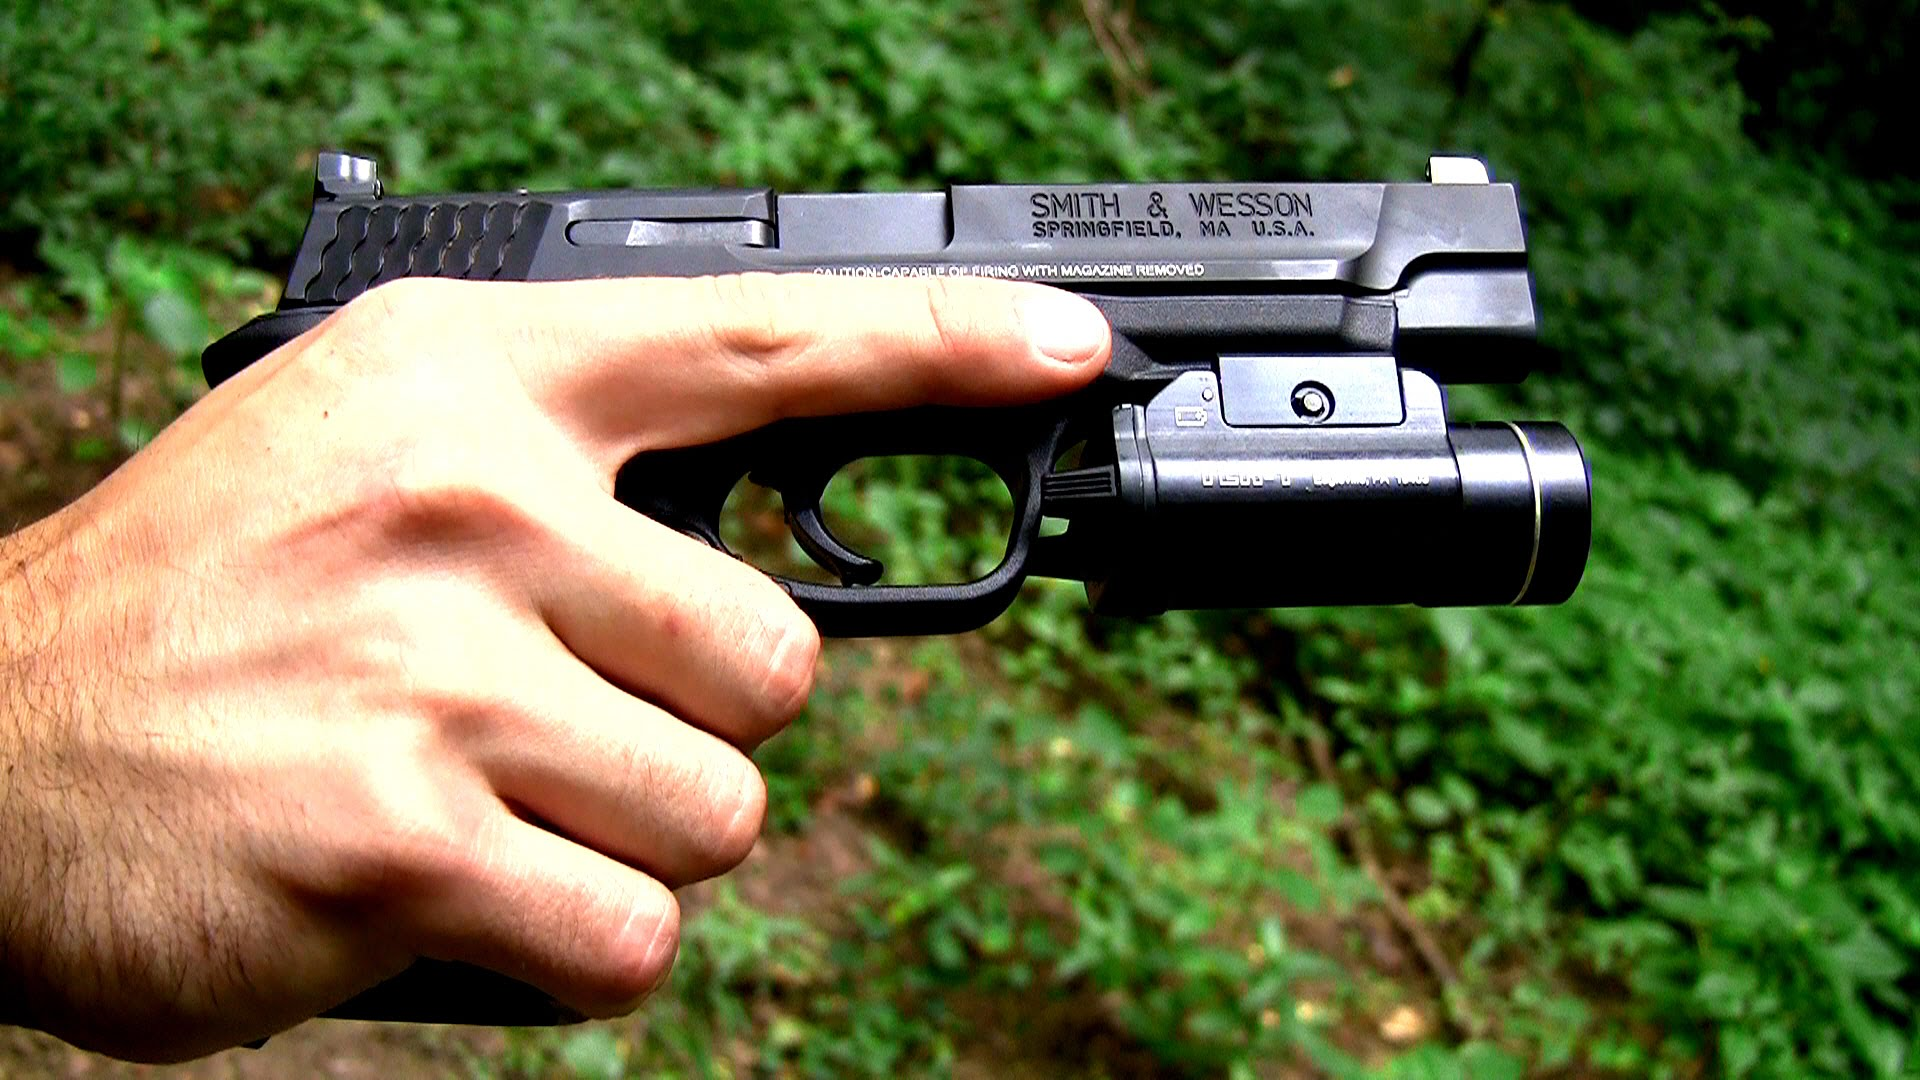 Smith & Wesson M&P9 Pro Series C.O.R.E.